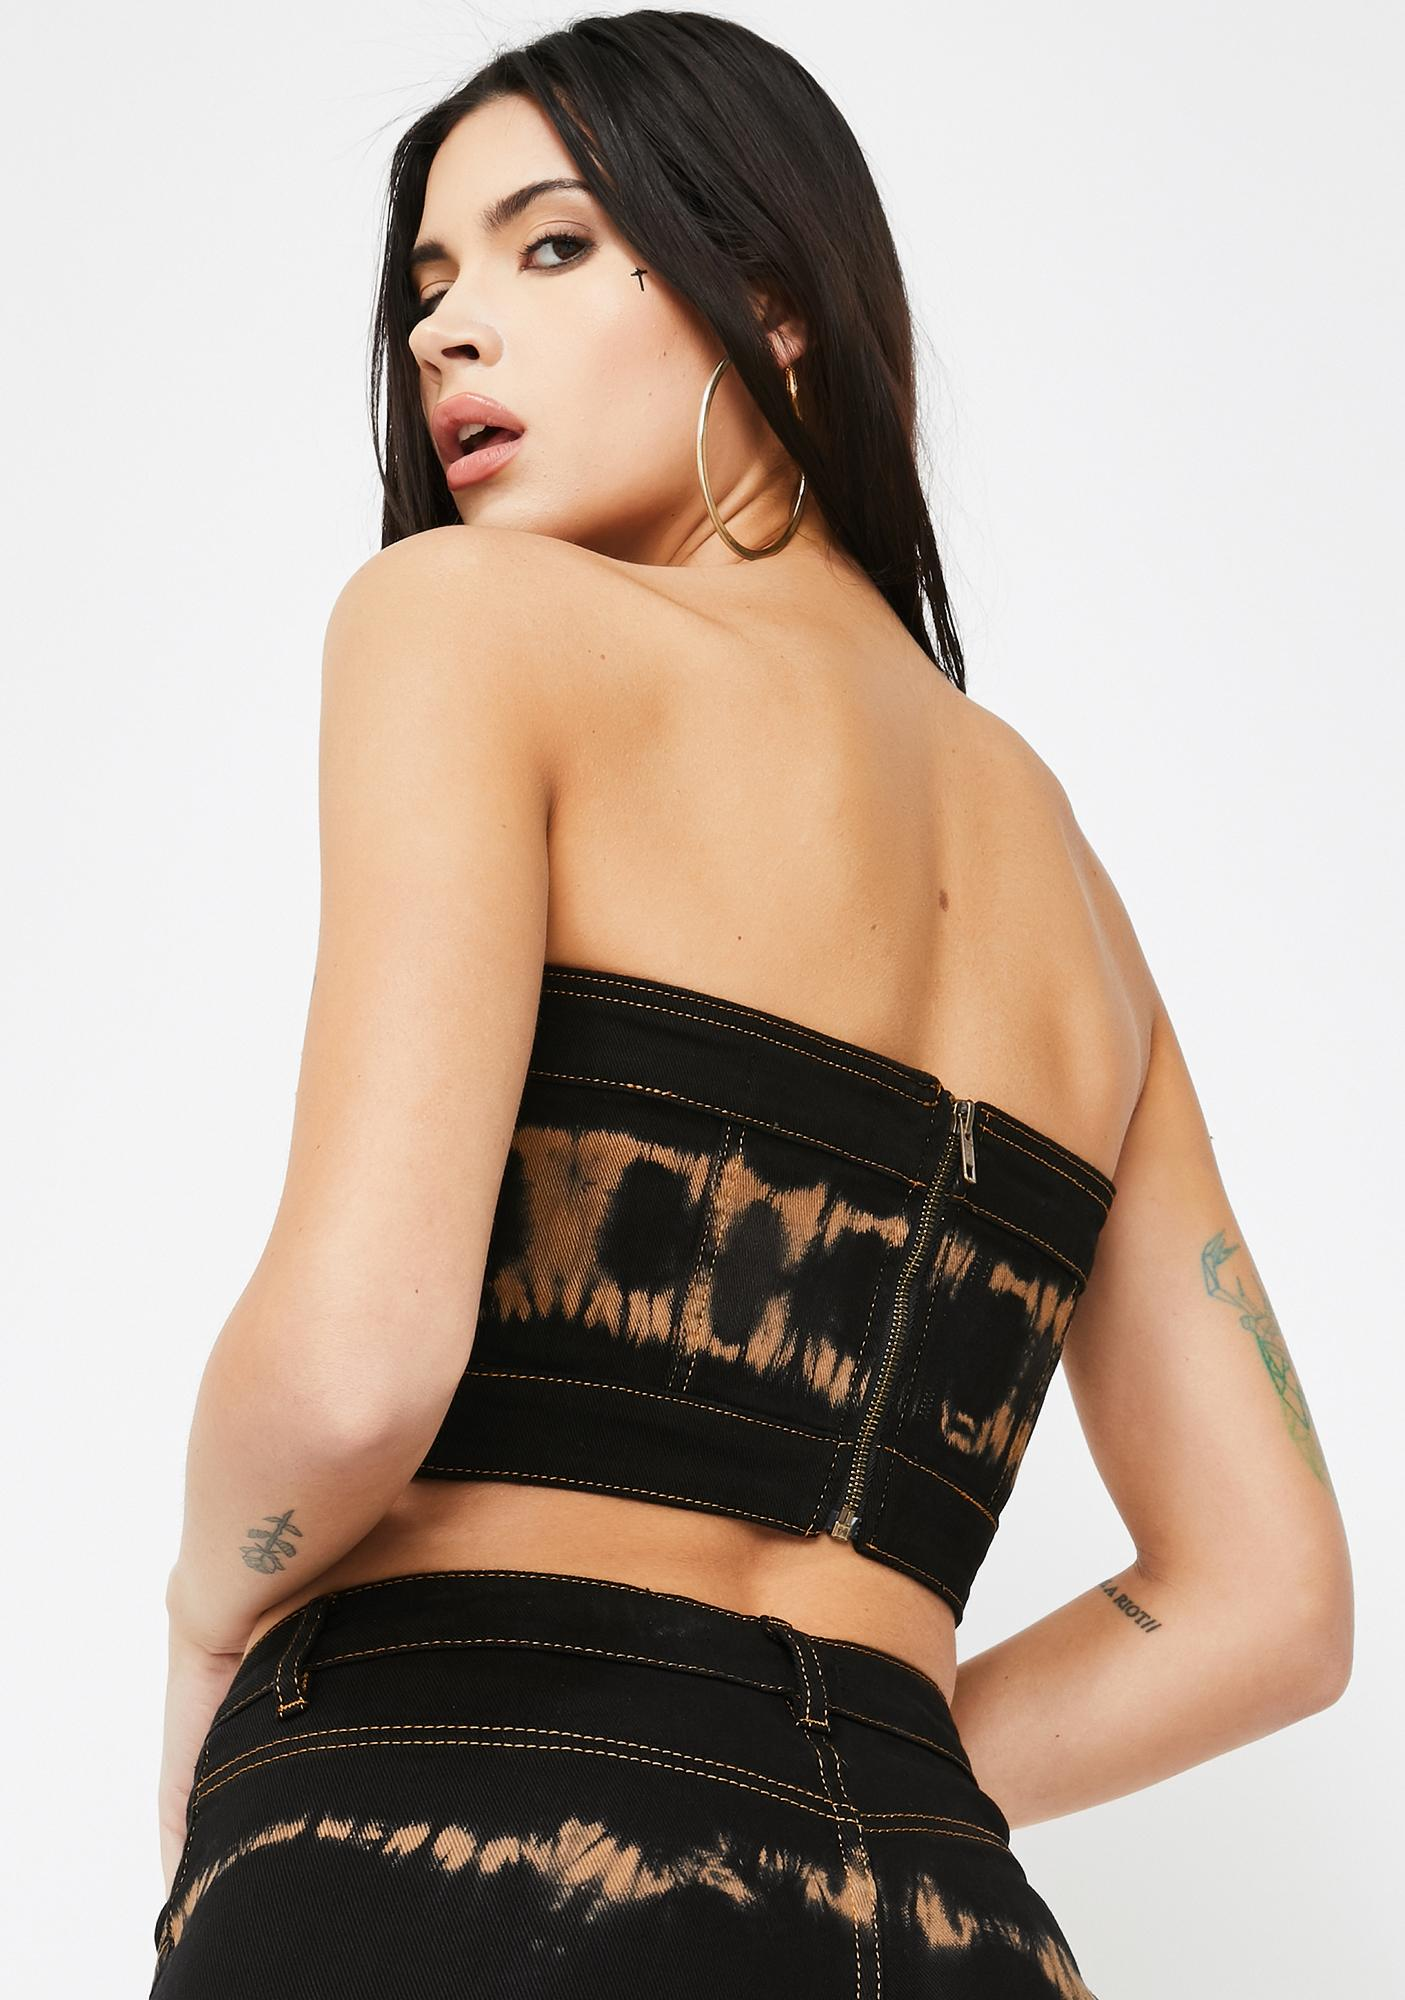 I AM GIA Arago Black Tube Top